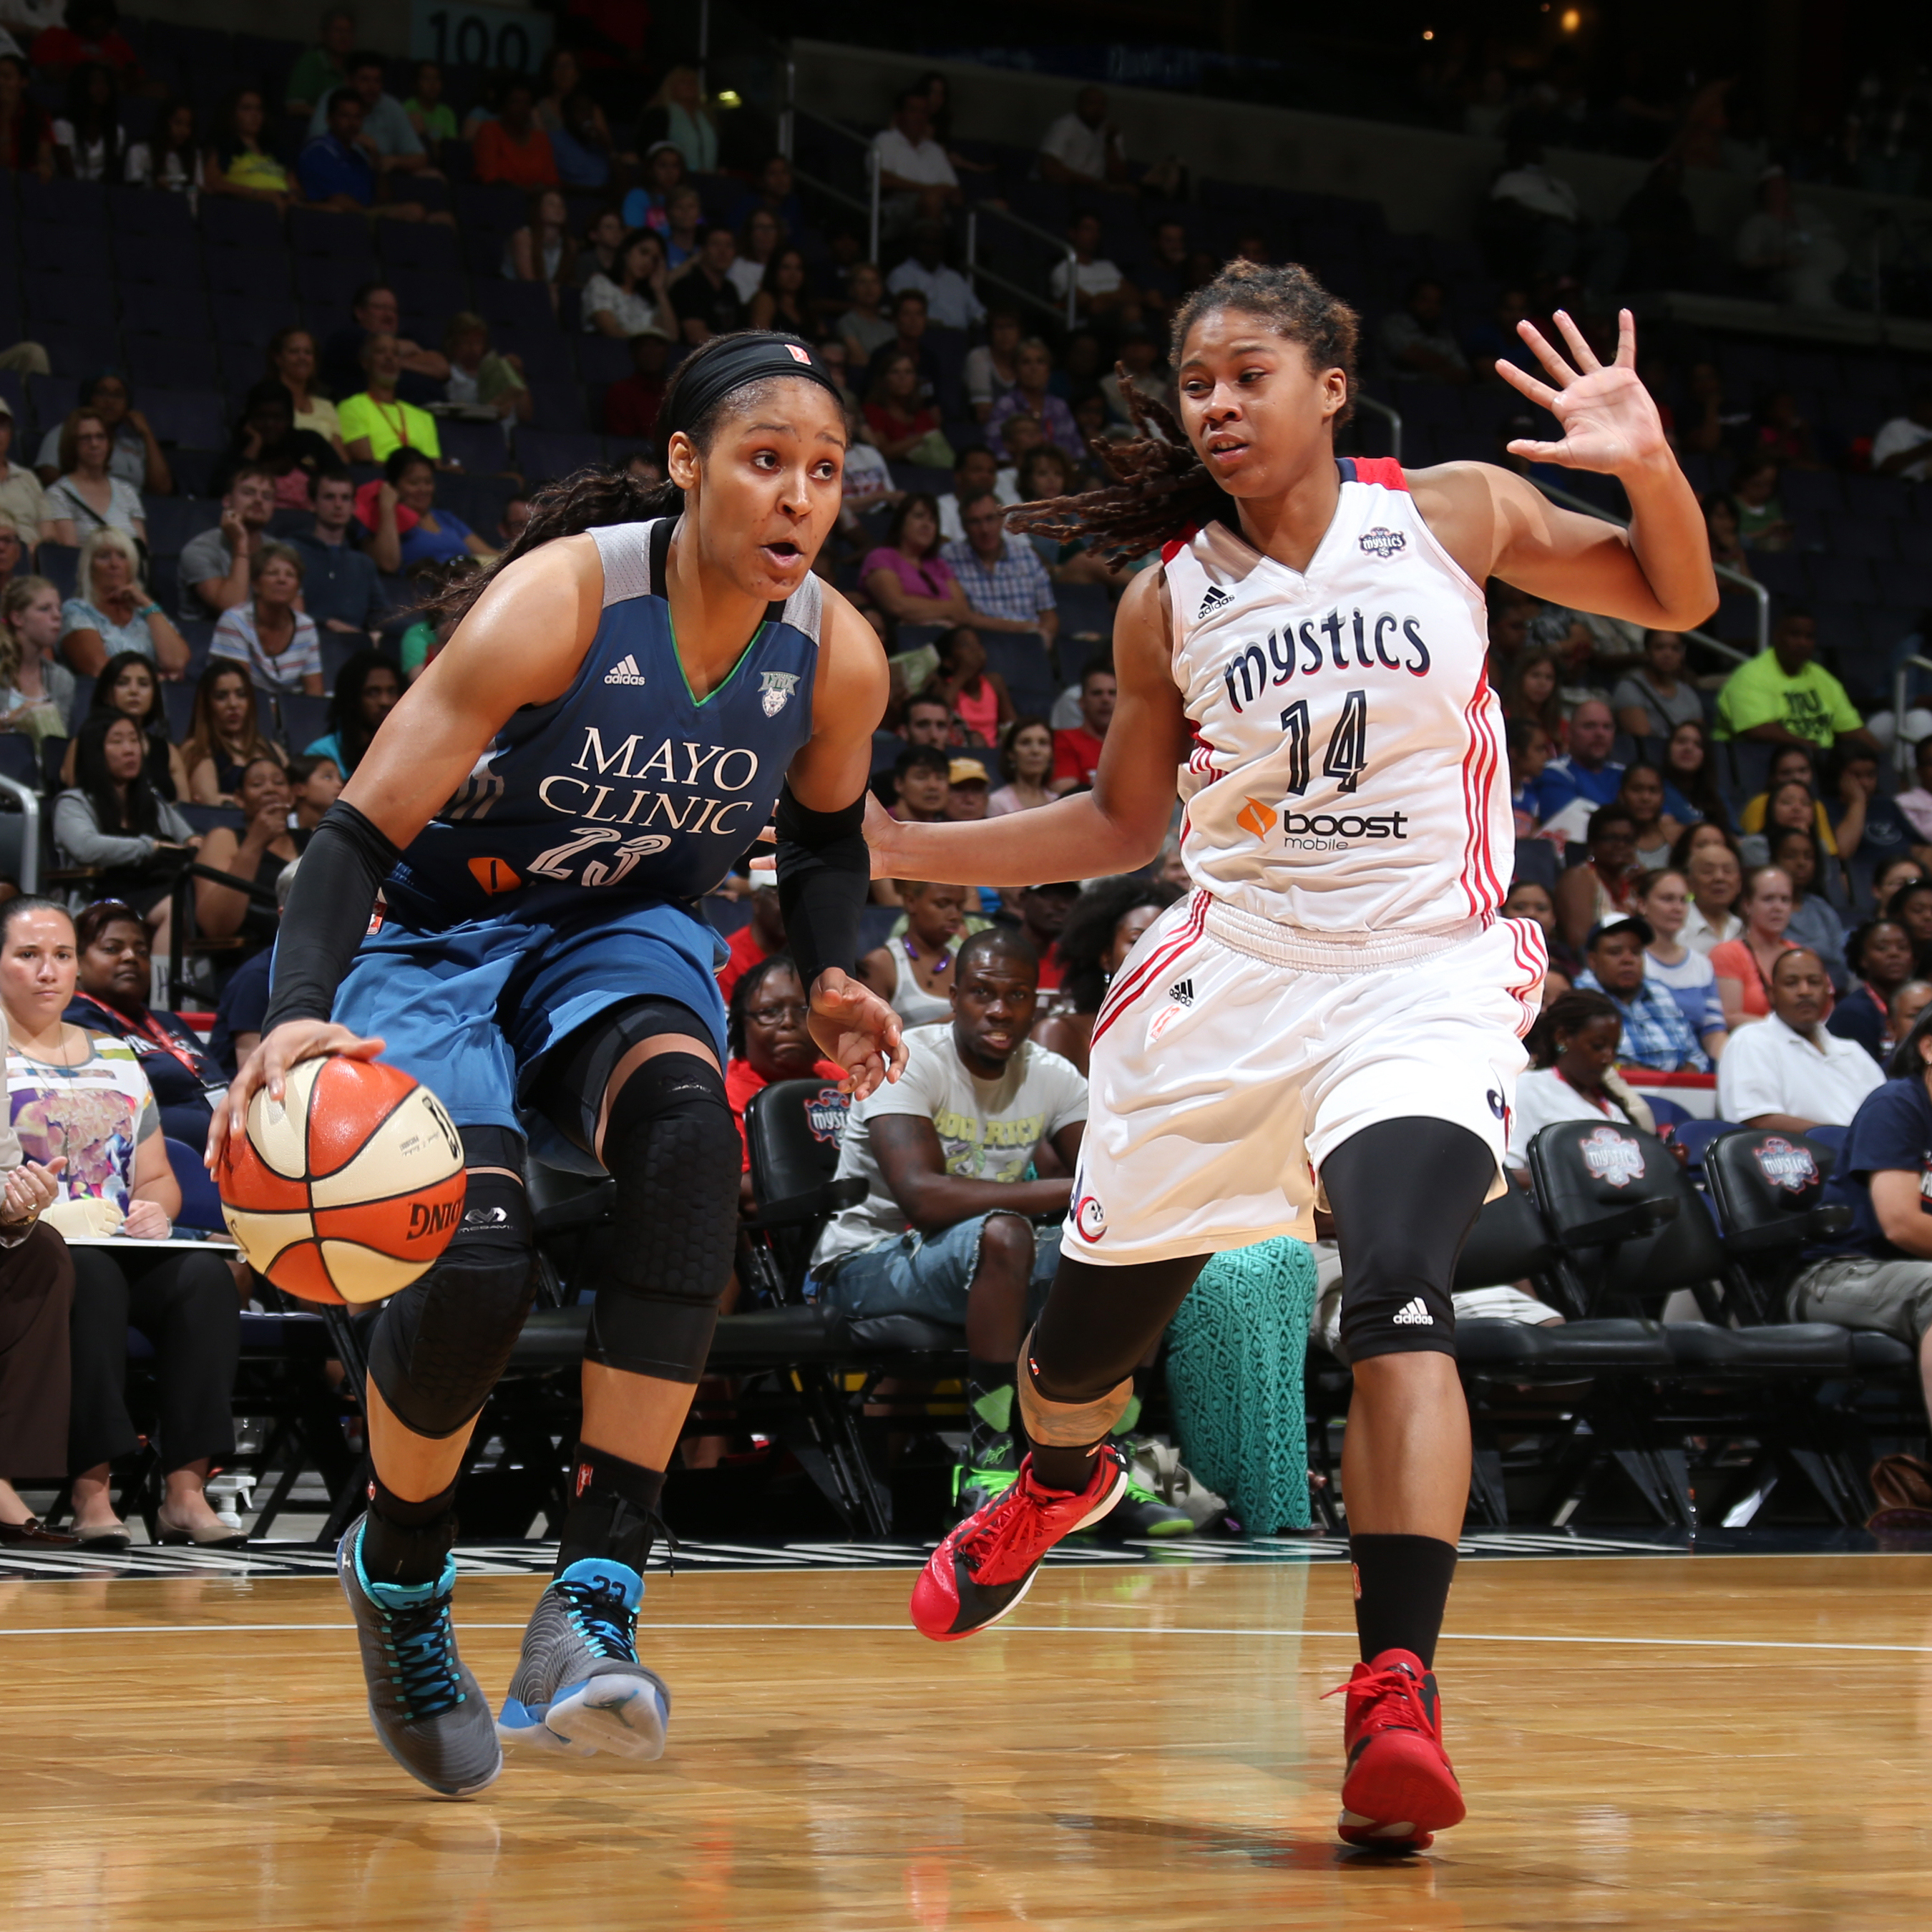 Lynx forward Maya Moore had a quiet game against the Mystics...well, quiet by her standards. Moore finished with just 12 points, eight rebounds and four assists.